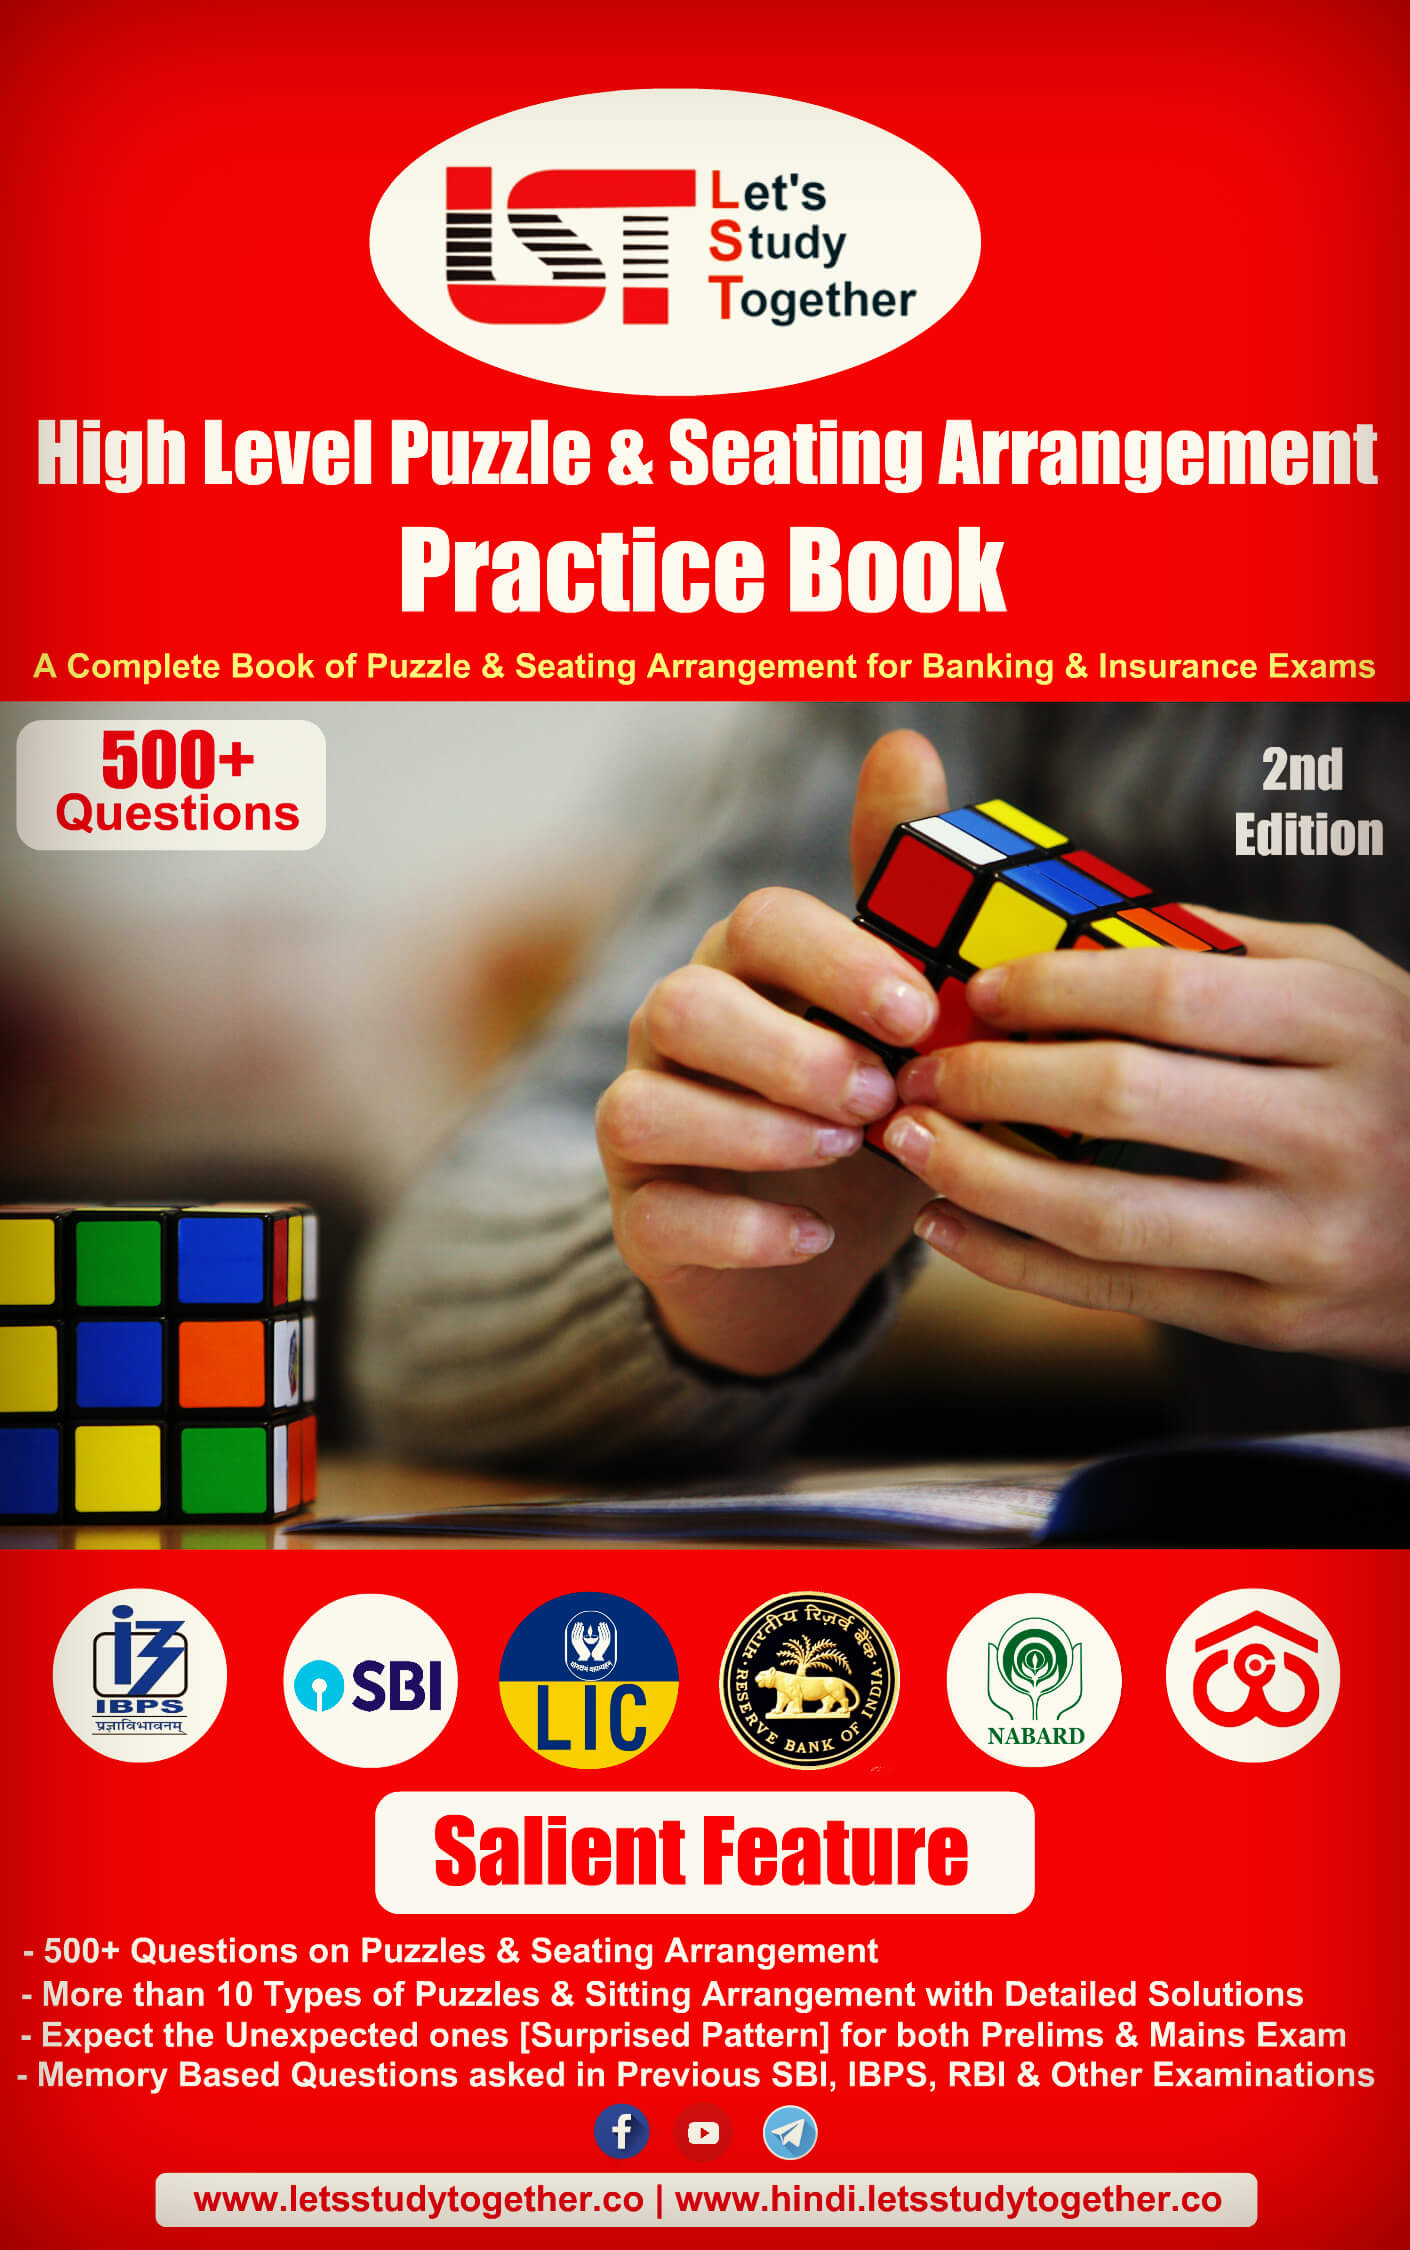 A Complete Book of Puzzle and Seating Arrangement for Banking & Insurance Exams 2019-20